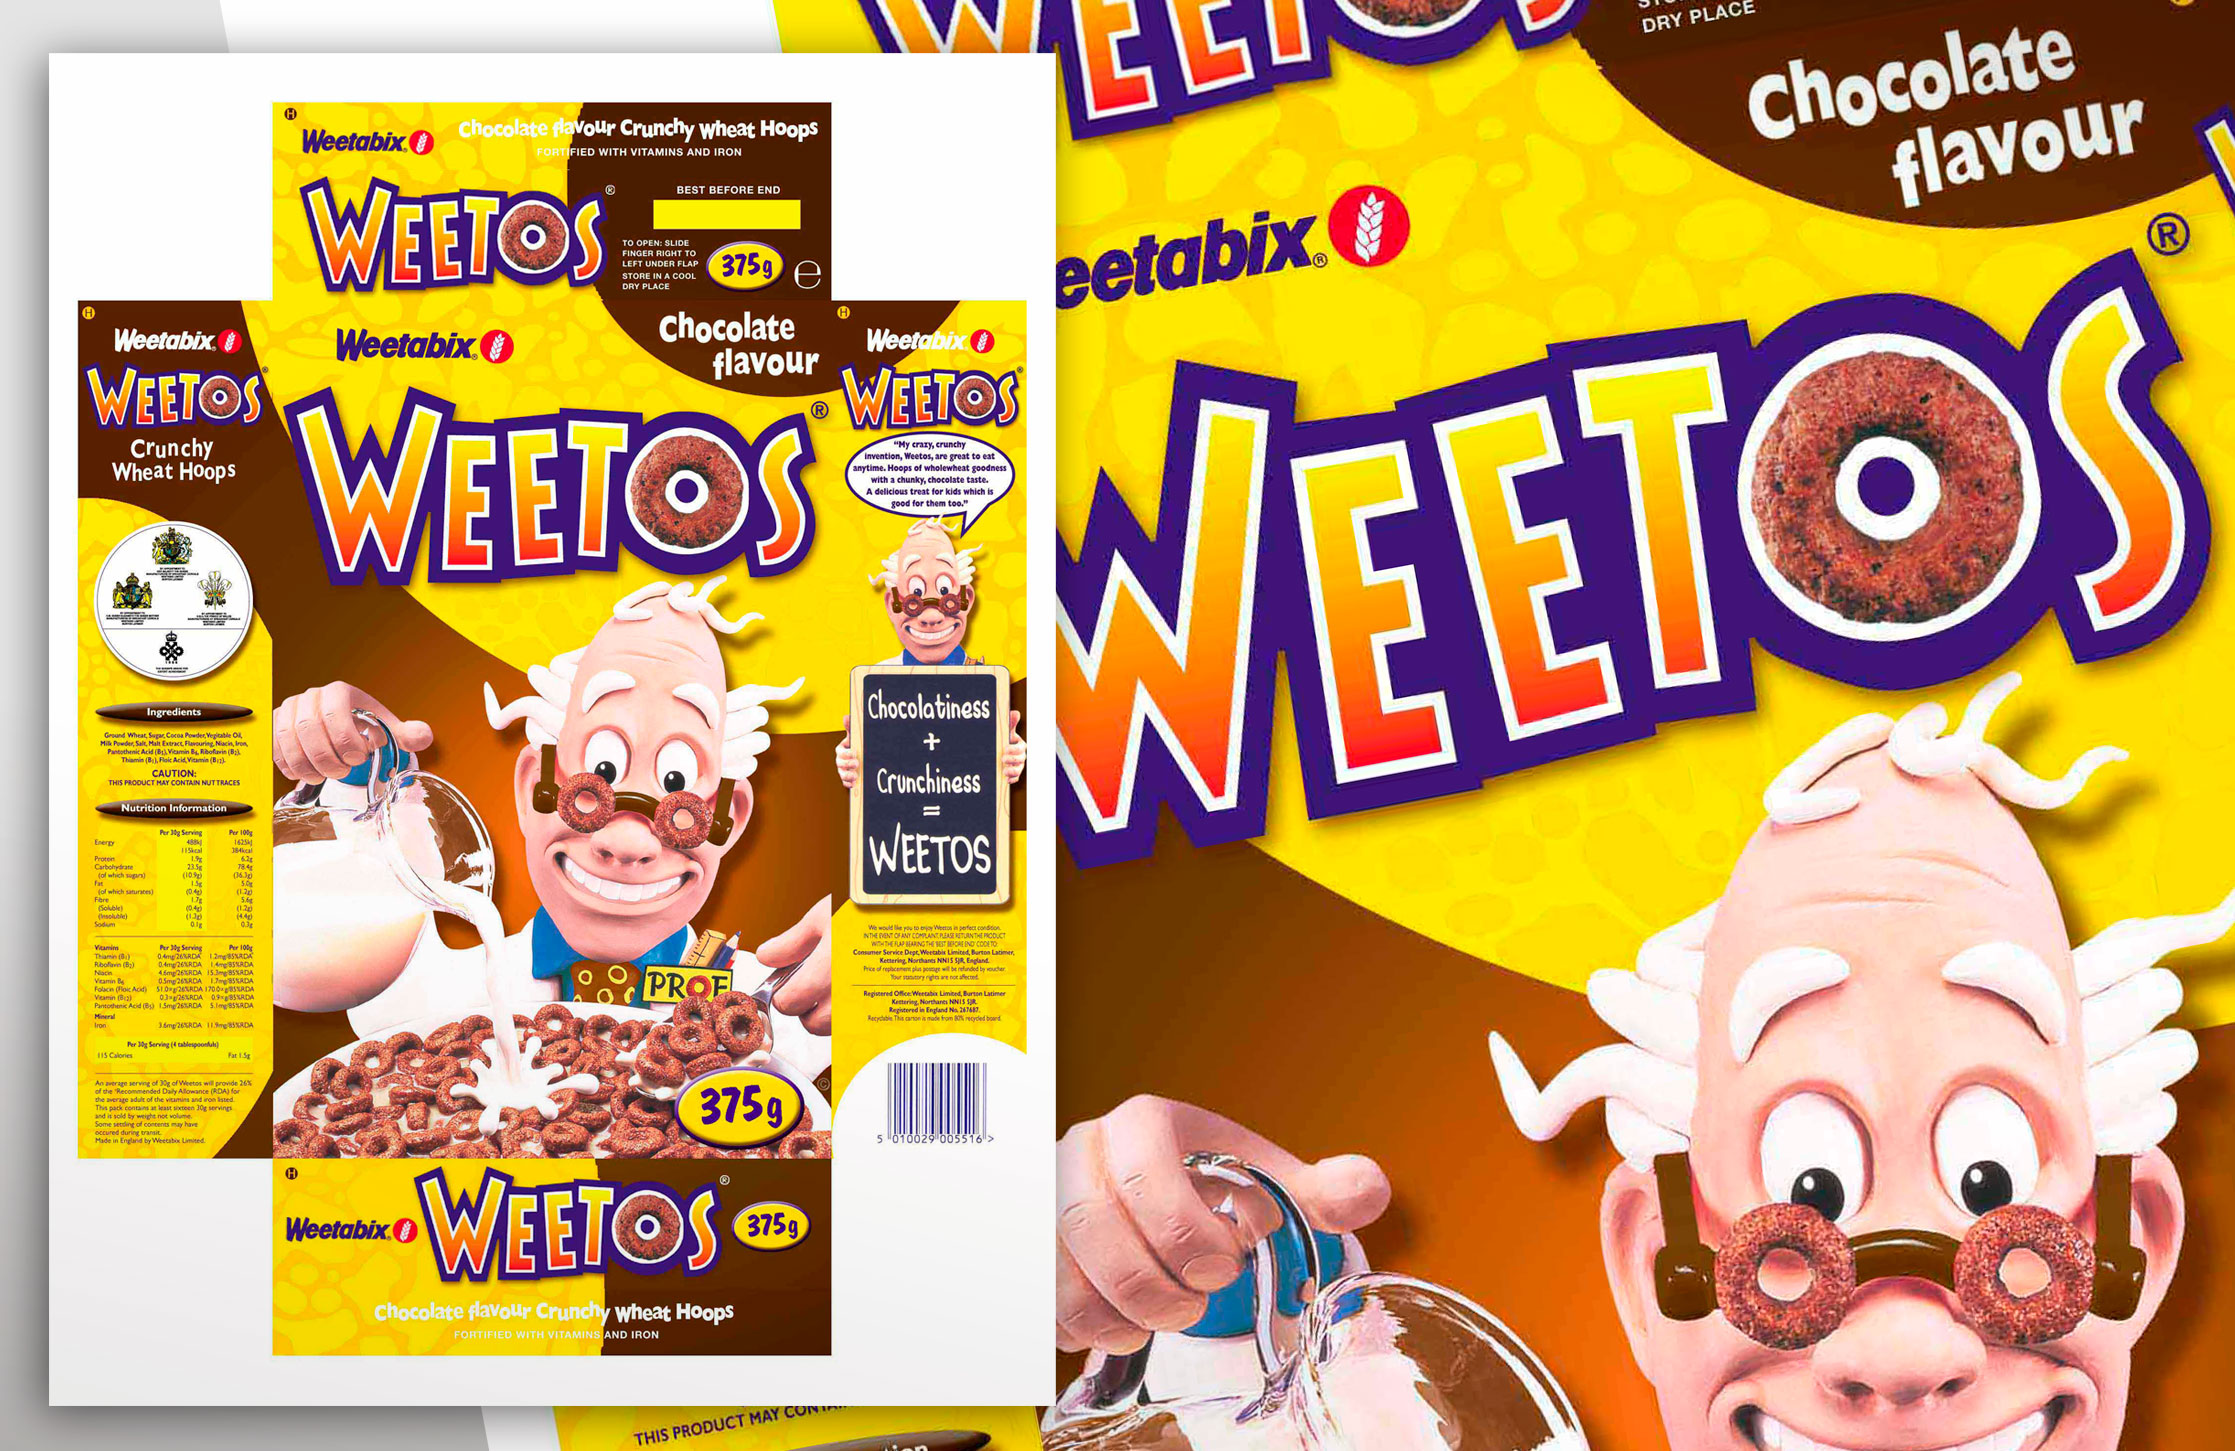 Weetabix Weetos pack